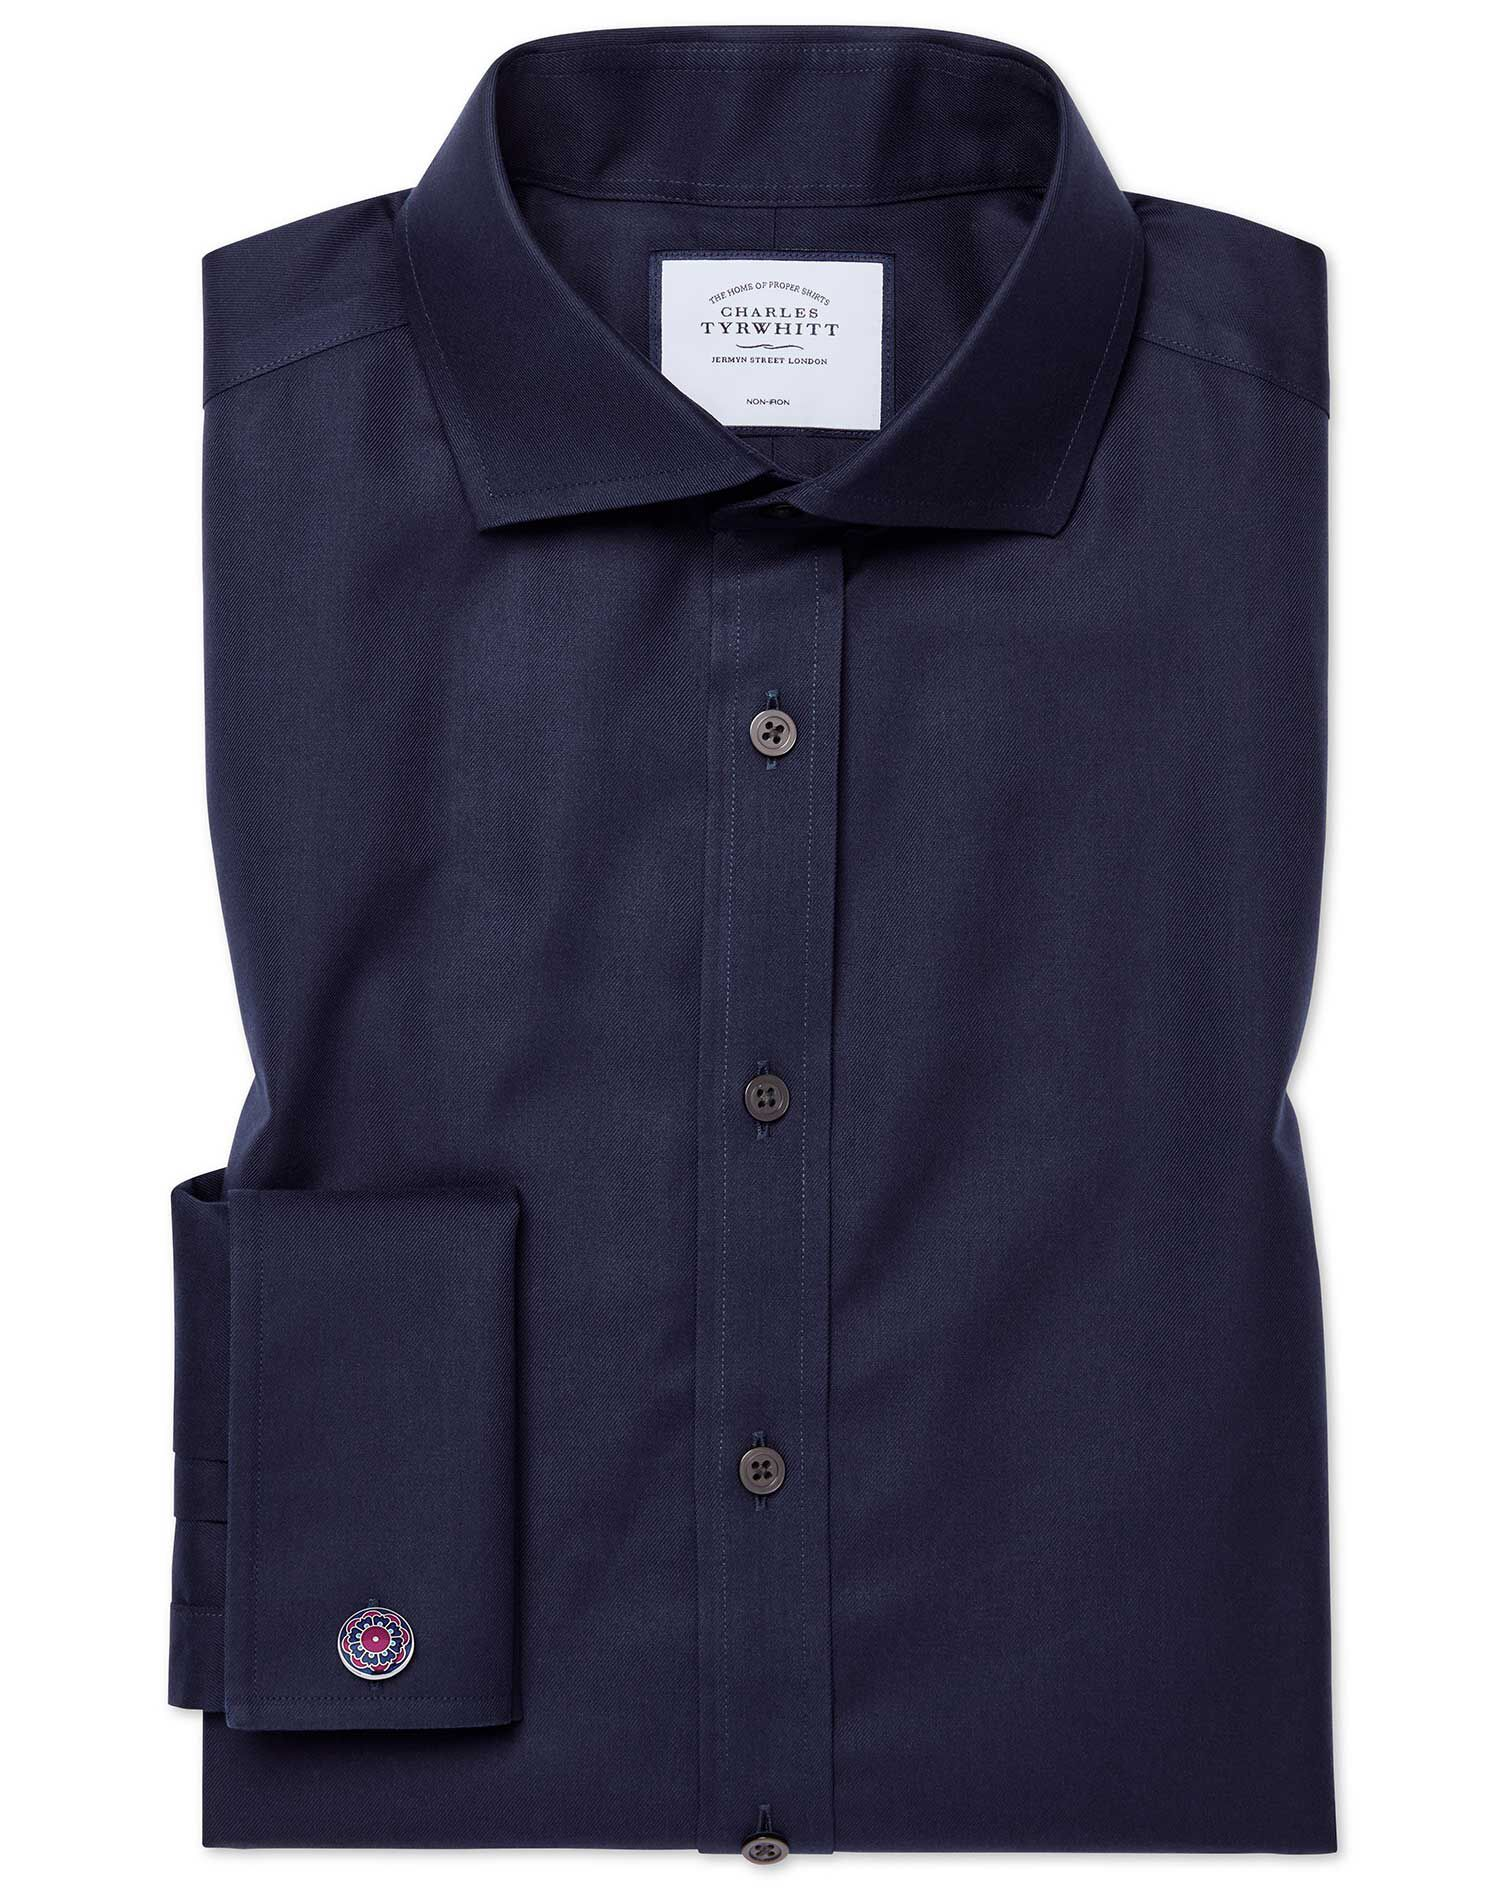 Slim Fit Cutaway Non-Iron Twill Navy Blue Cotton Formal Shirt Double Cuff Size 16/33 by Charles Tyrw